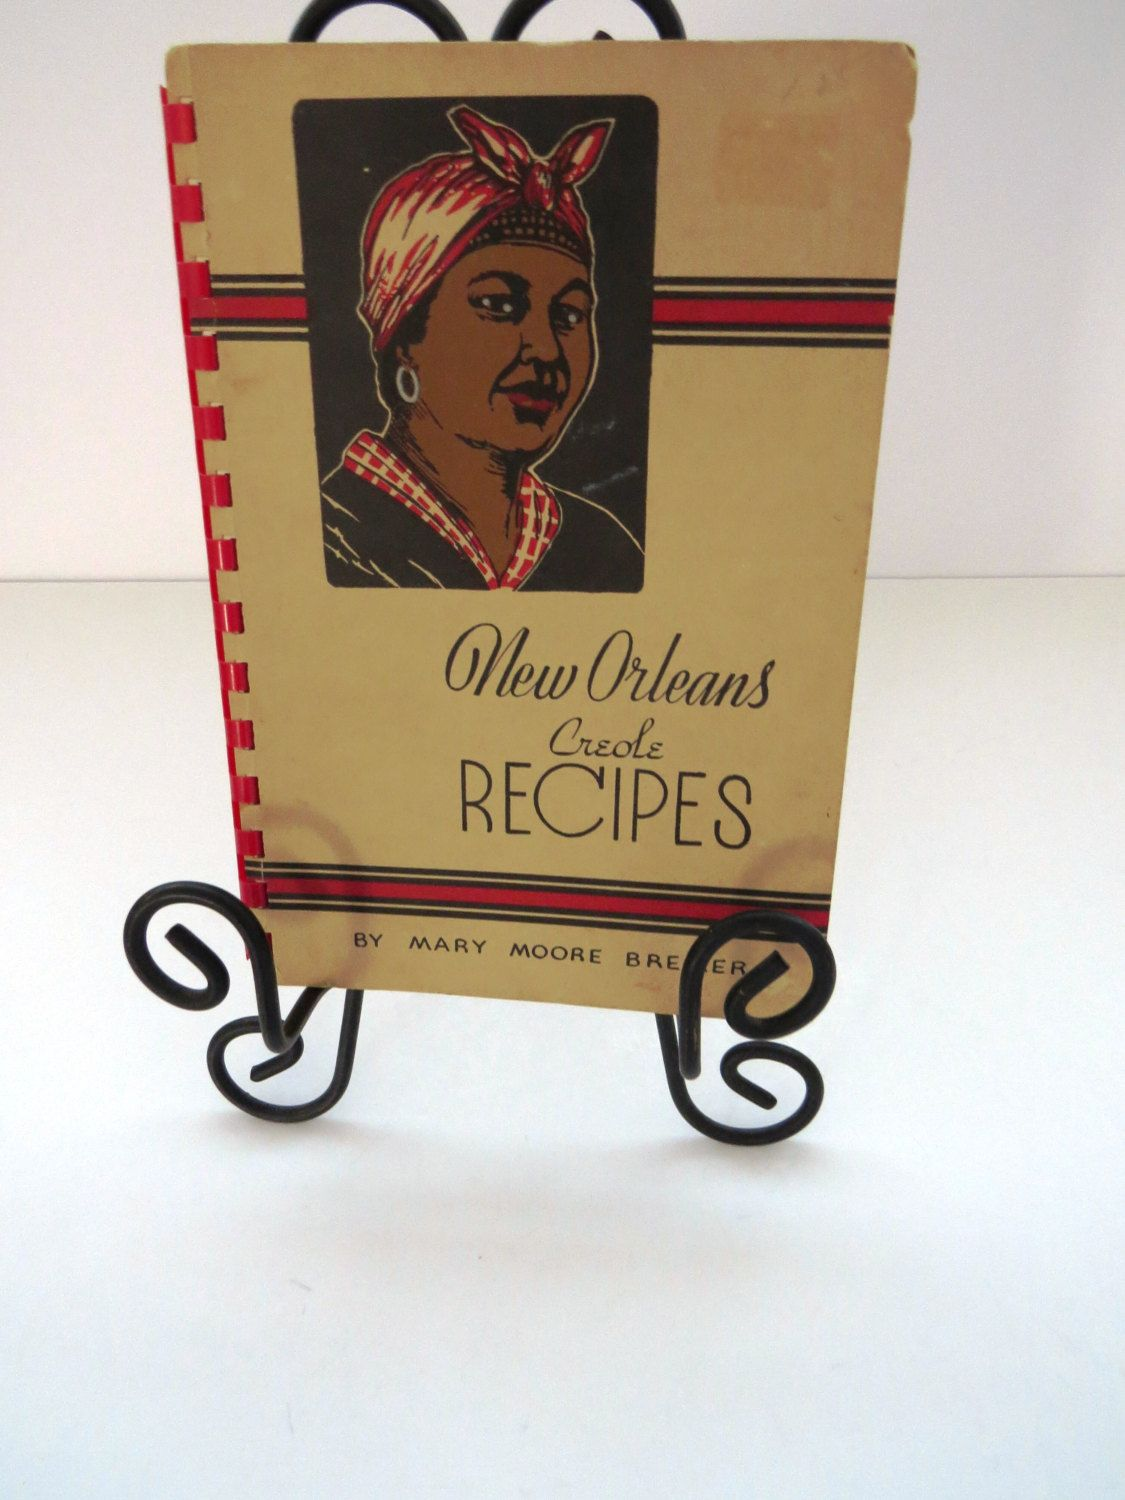 New Orleans Creole Recipe Cookbook